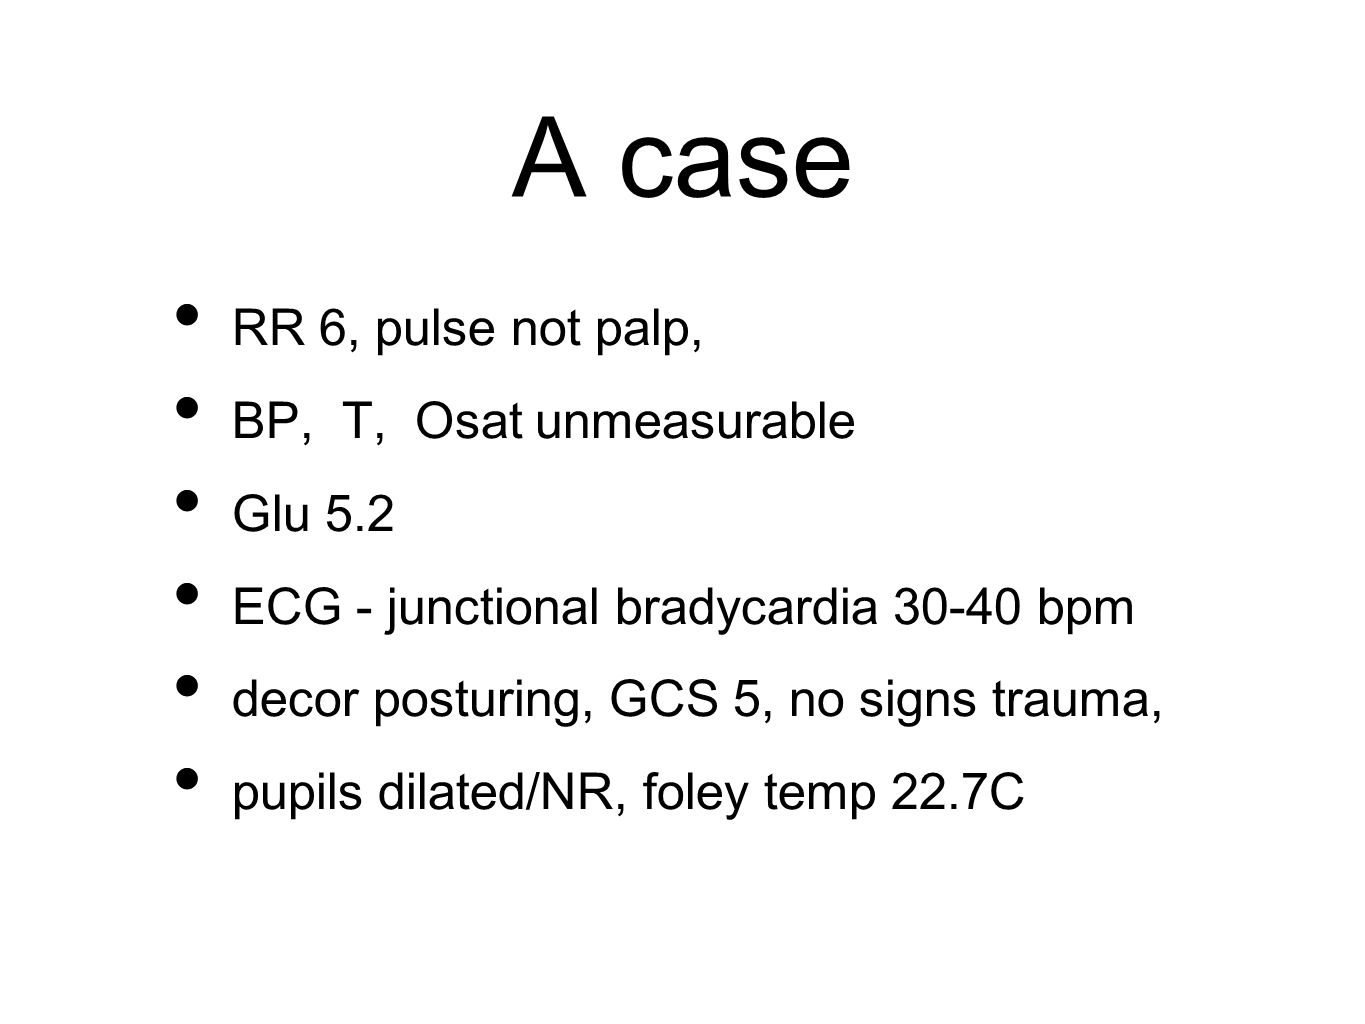 does defibrillation need to be withheld until >30C.